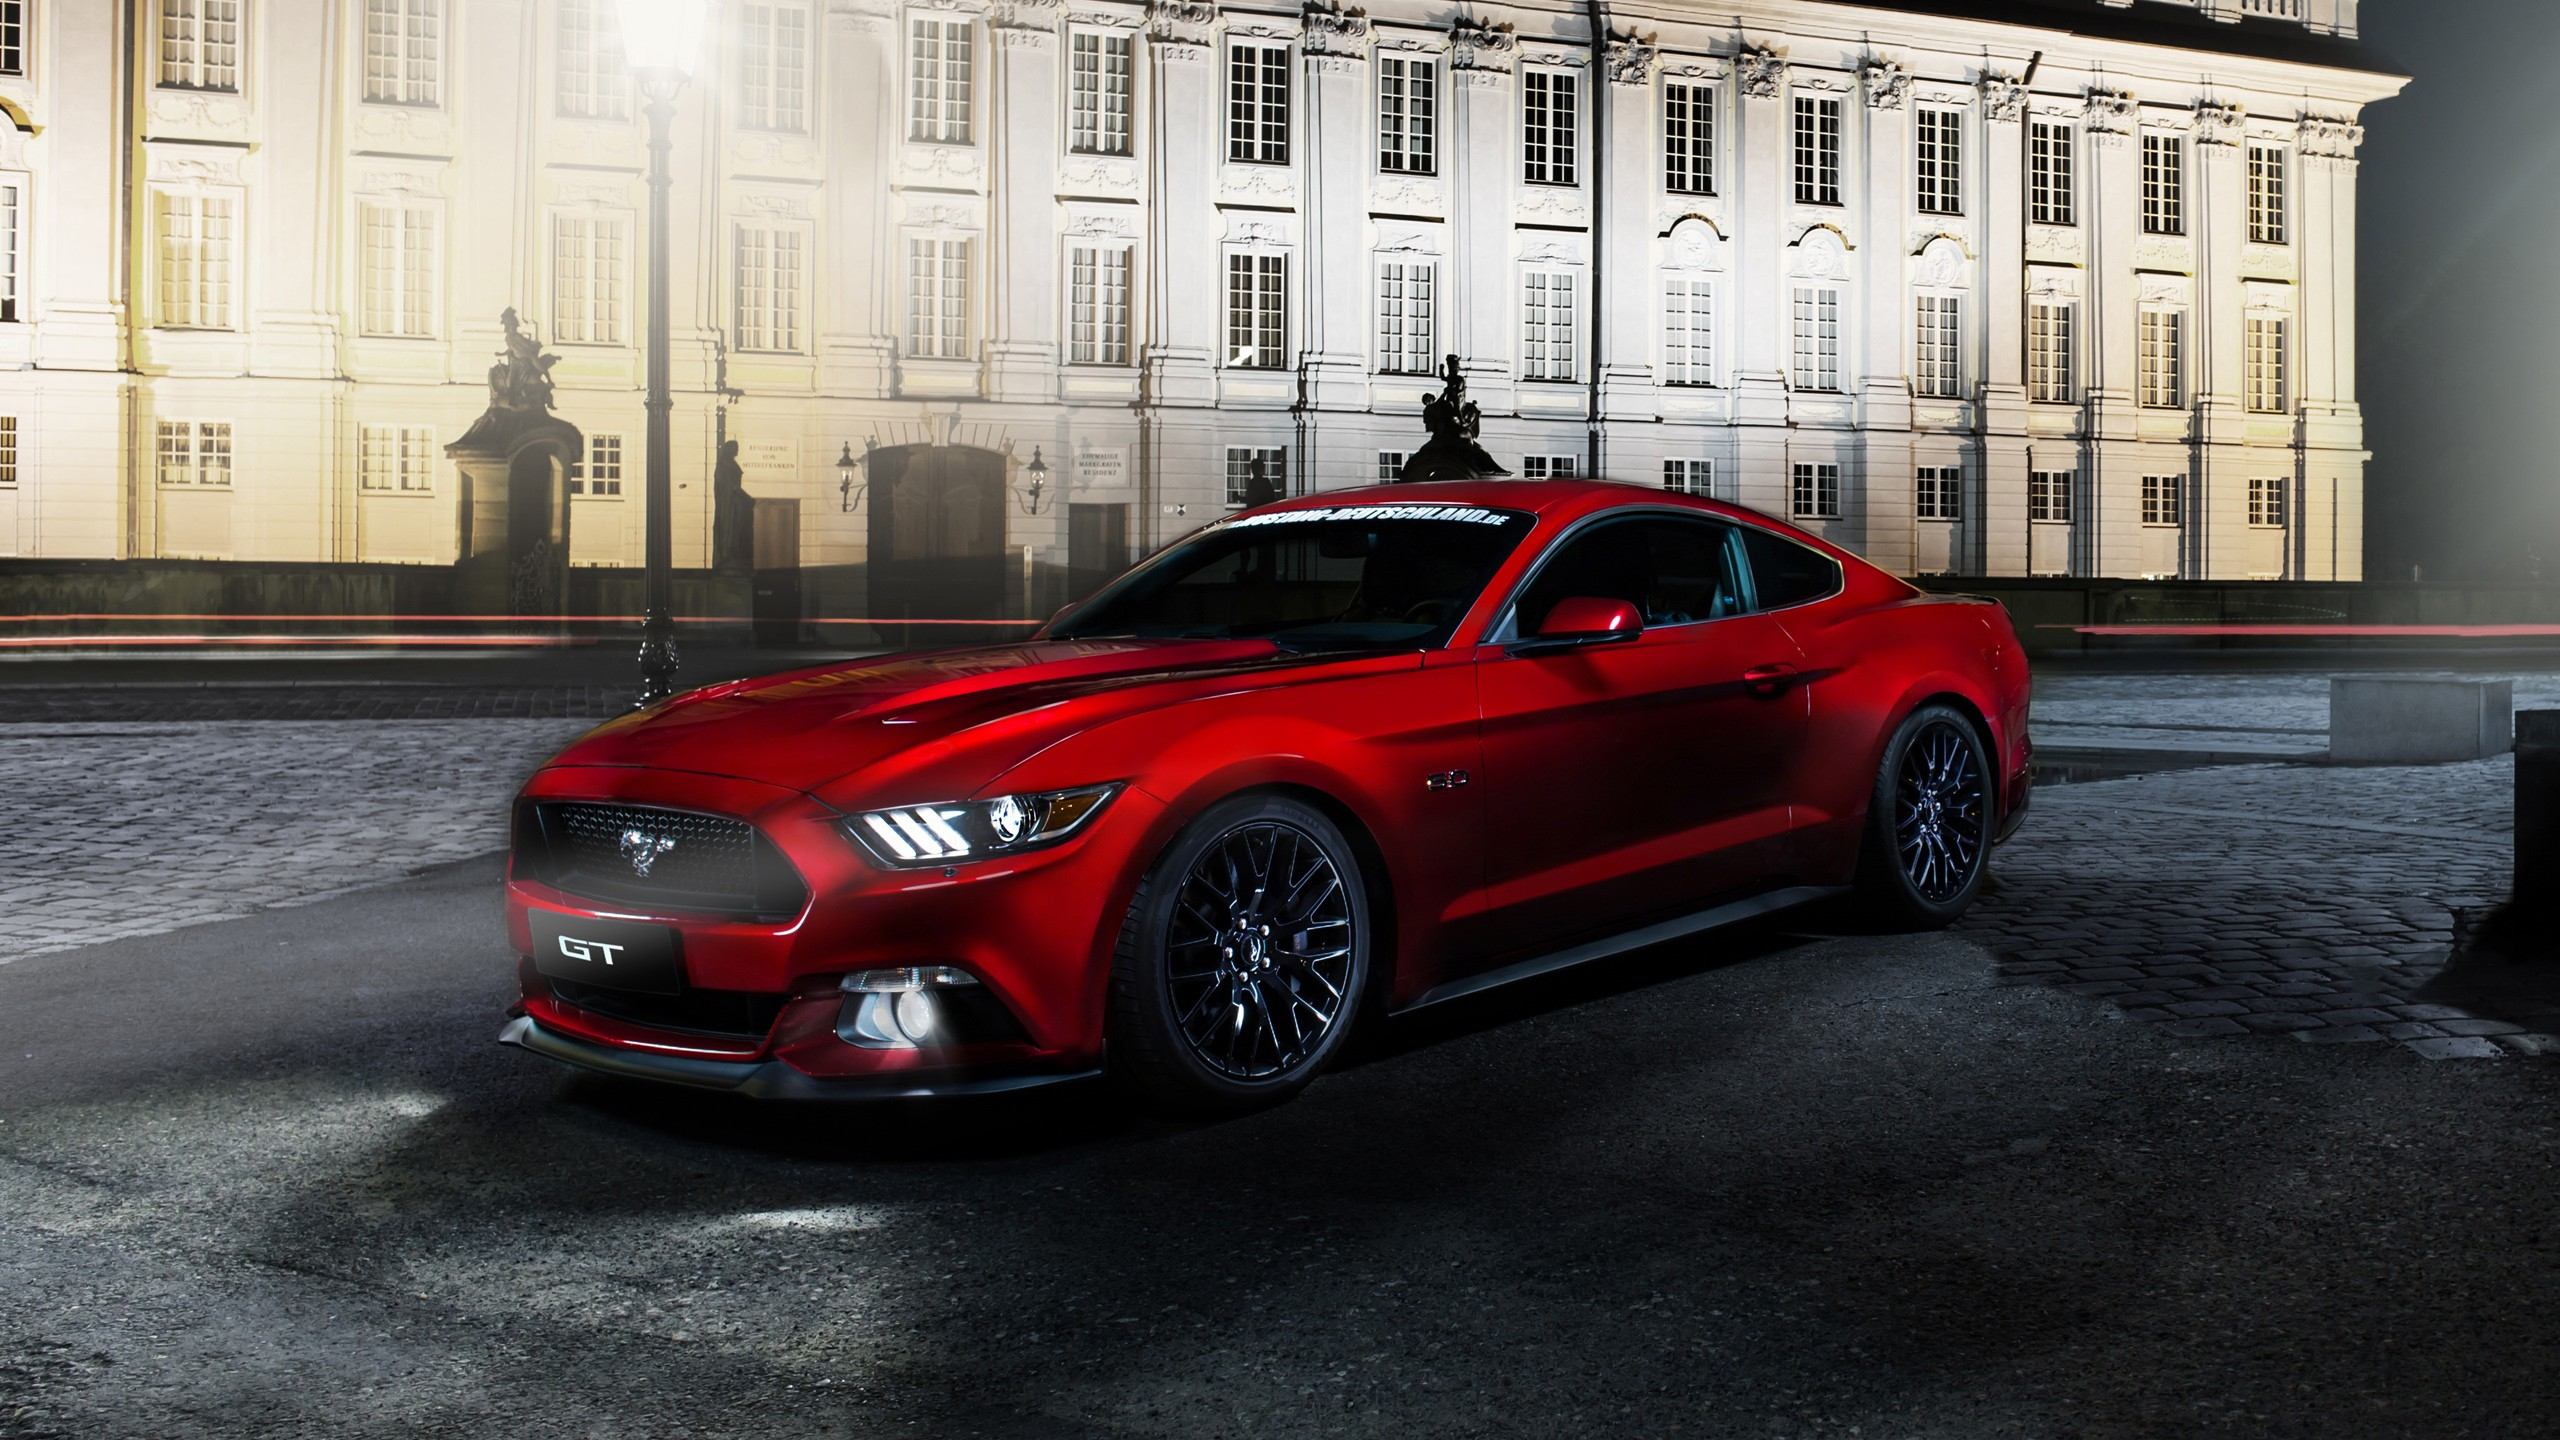 Ford Mustang Gt 2015 Wallpaper Hd Car Wallpapers Id 5461